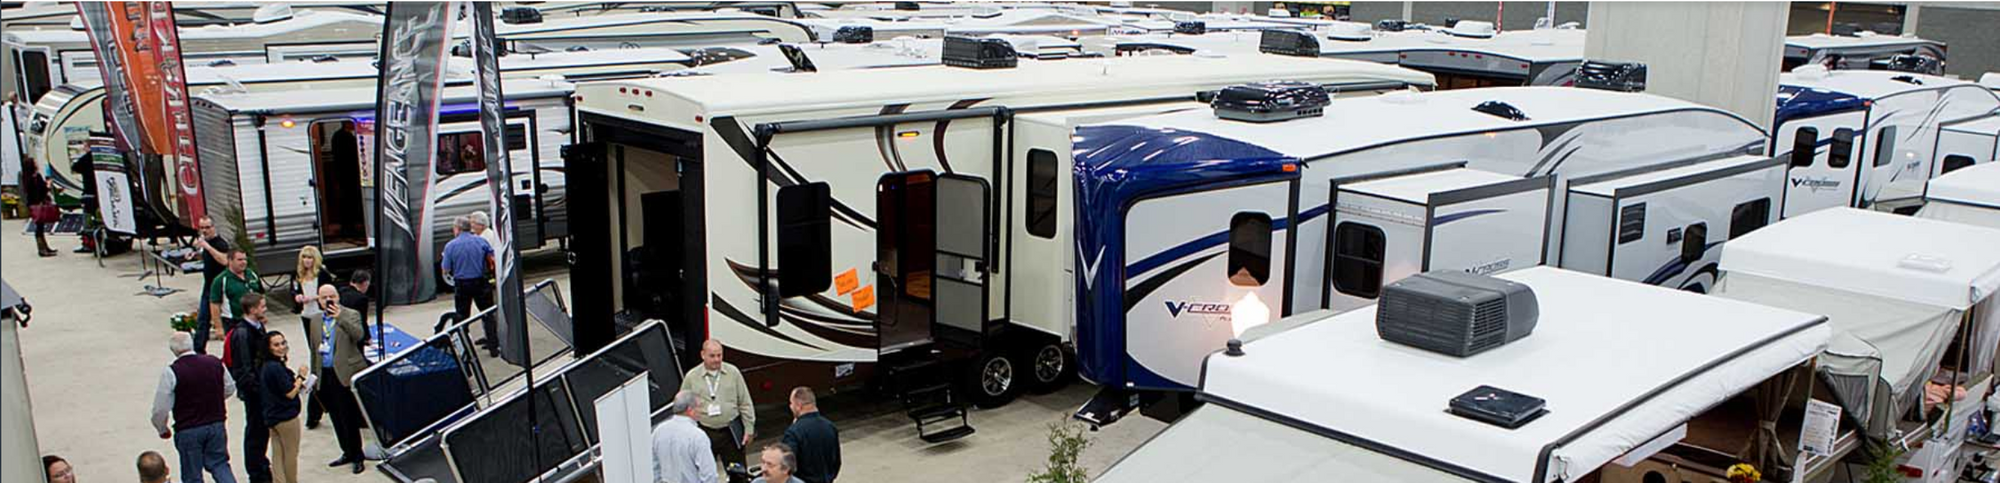 Come meet the RVezy Team at your local RV show in 2020!